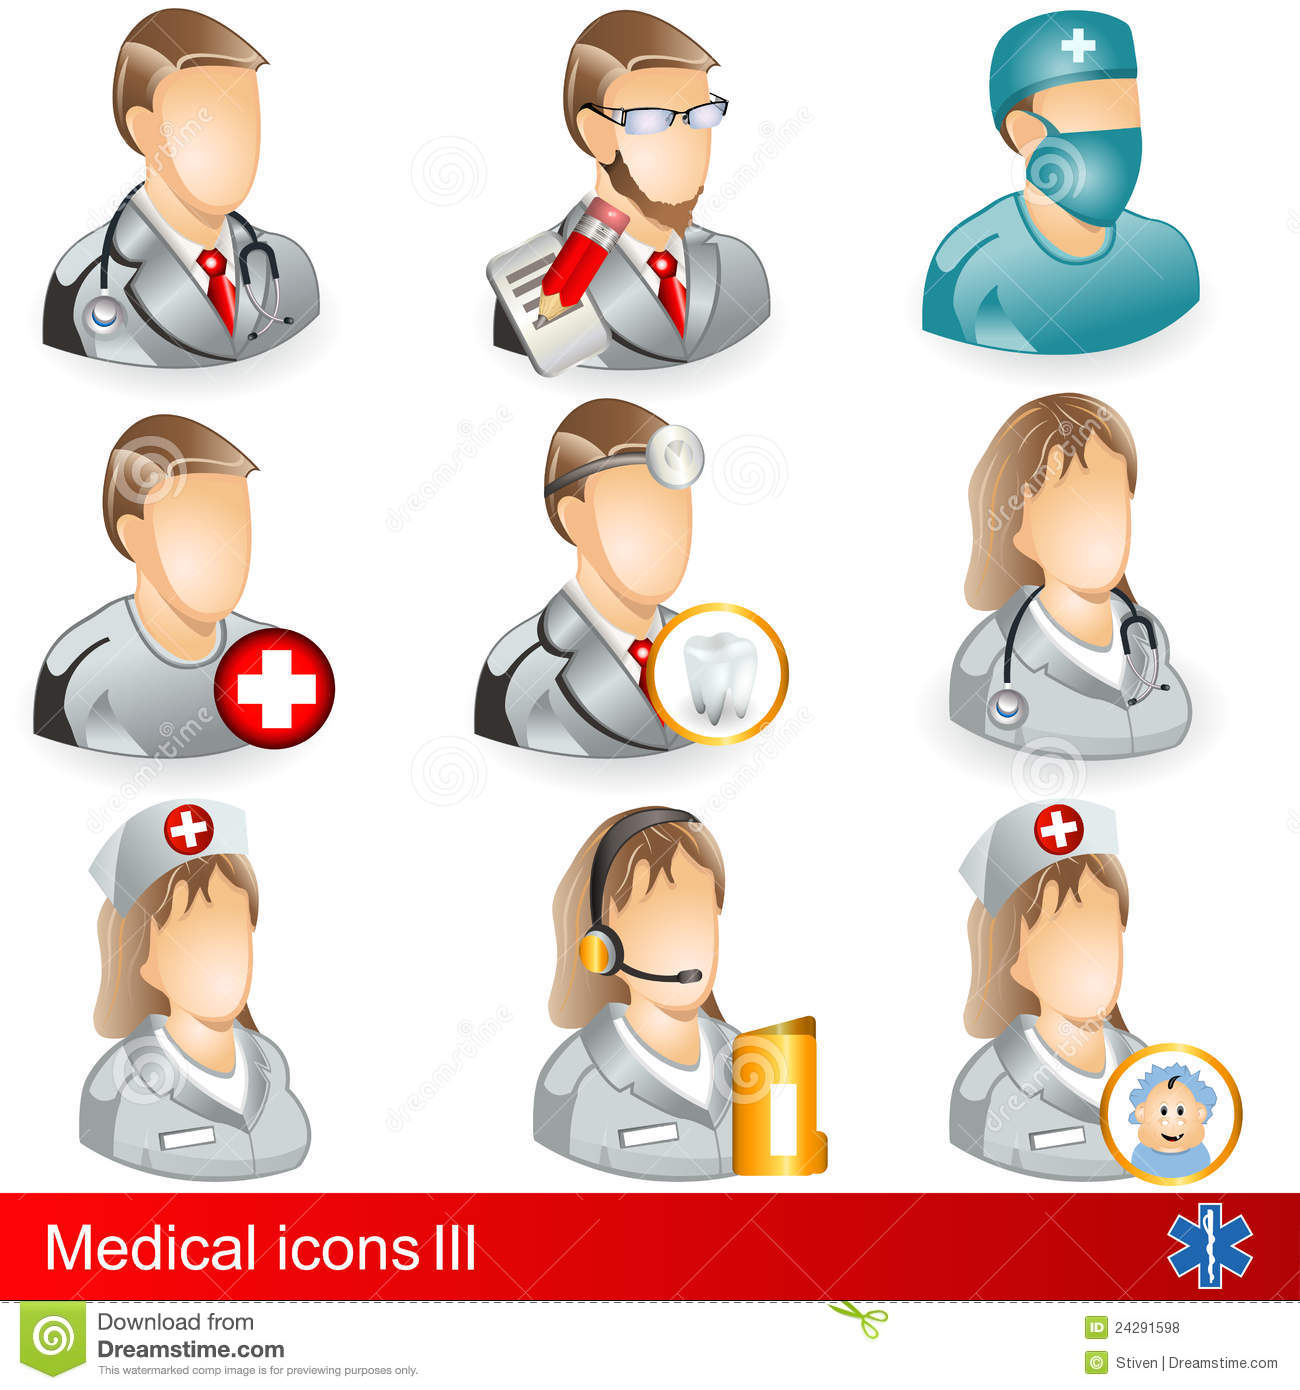 What are the different medical professions?